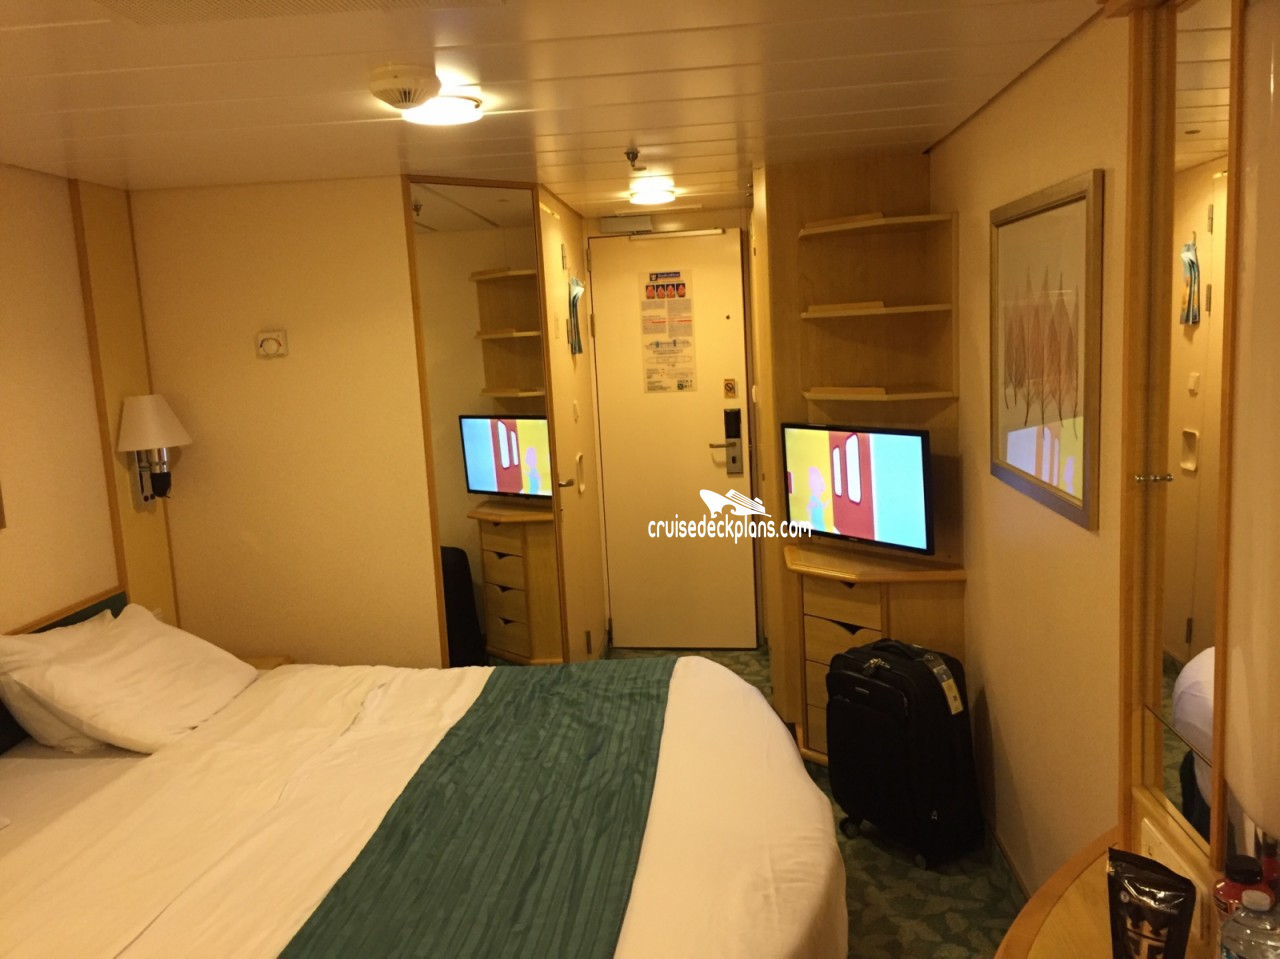 Liberty of the seas deck plans diagrams pictures video for Liberty of the seas best cabins